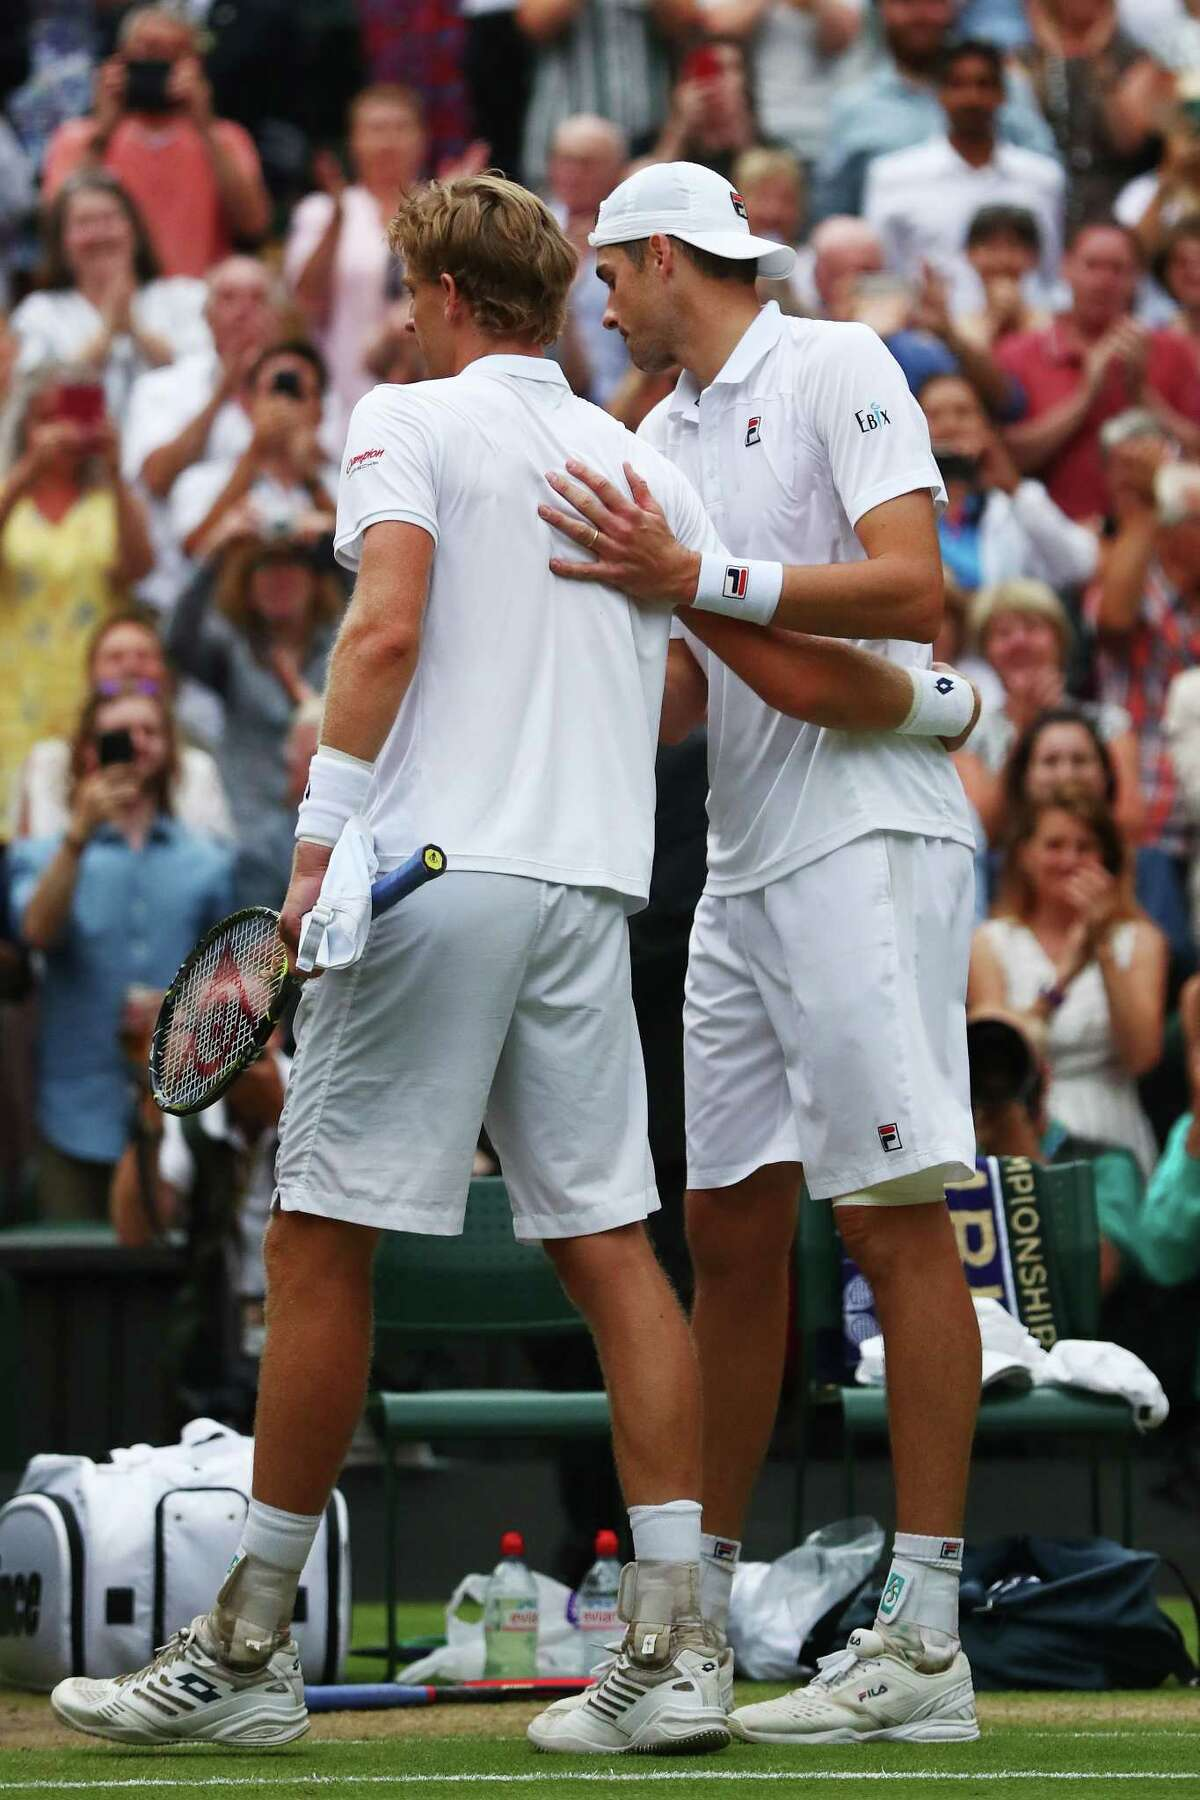 LONDON, ENGLAND - JULY 13: Kevin Anderson of South Africa (L) hugs John Isner of The United States after their Men's Singles semi-final match on day eleven of the Wimbledon Lawn Tennis Championships at All England Lawn Tennis and Croquet Club on July 13, 2018 in London, England.